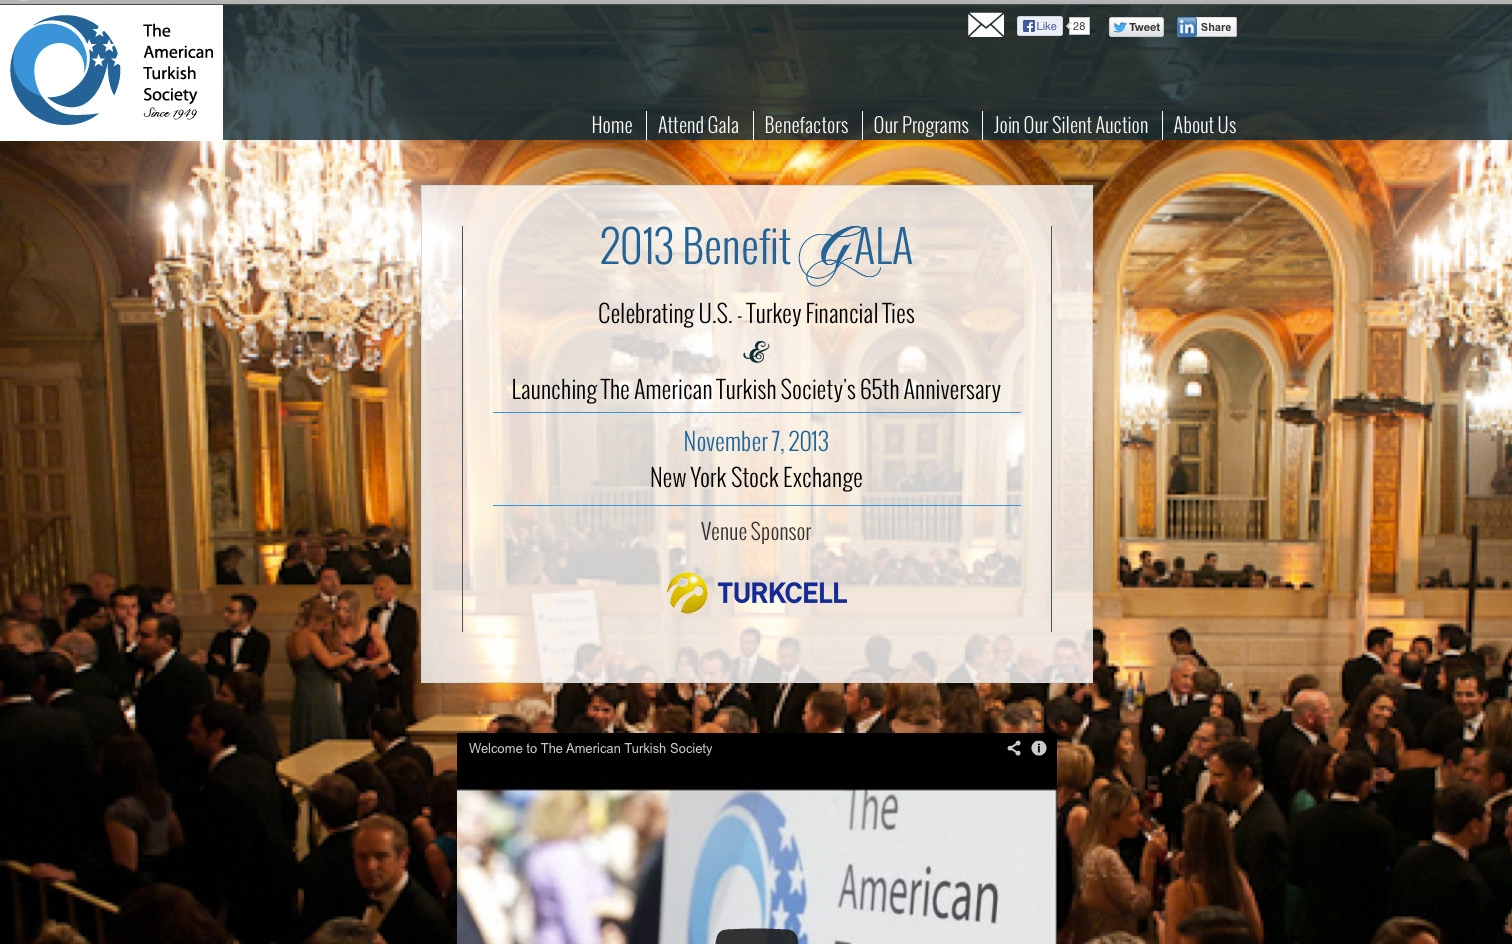 American Turkish Society Fundraising Microsite for Annual Gala